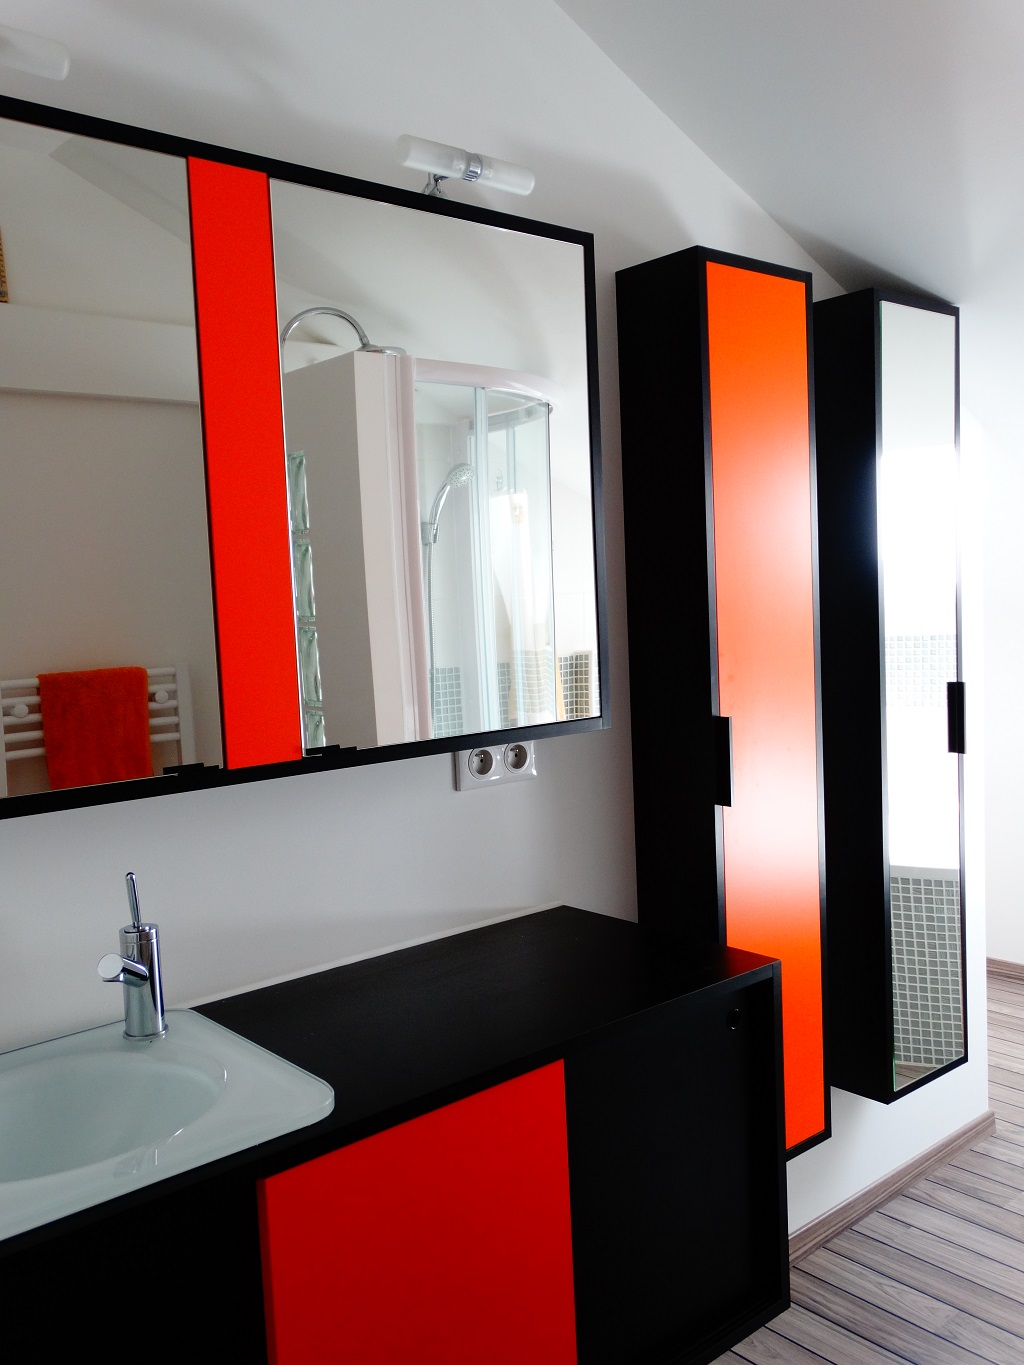 Best salle de bain orange et noir ideas amazing house for Agencement salle de bain 3m2